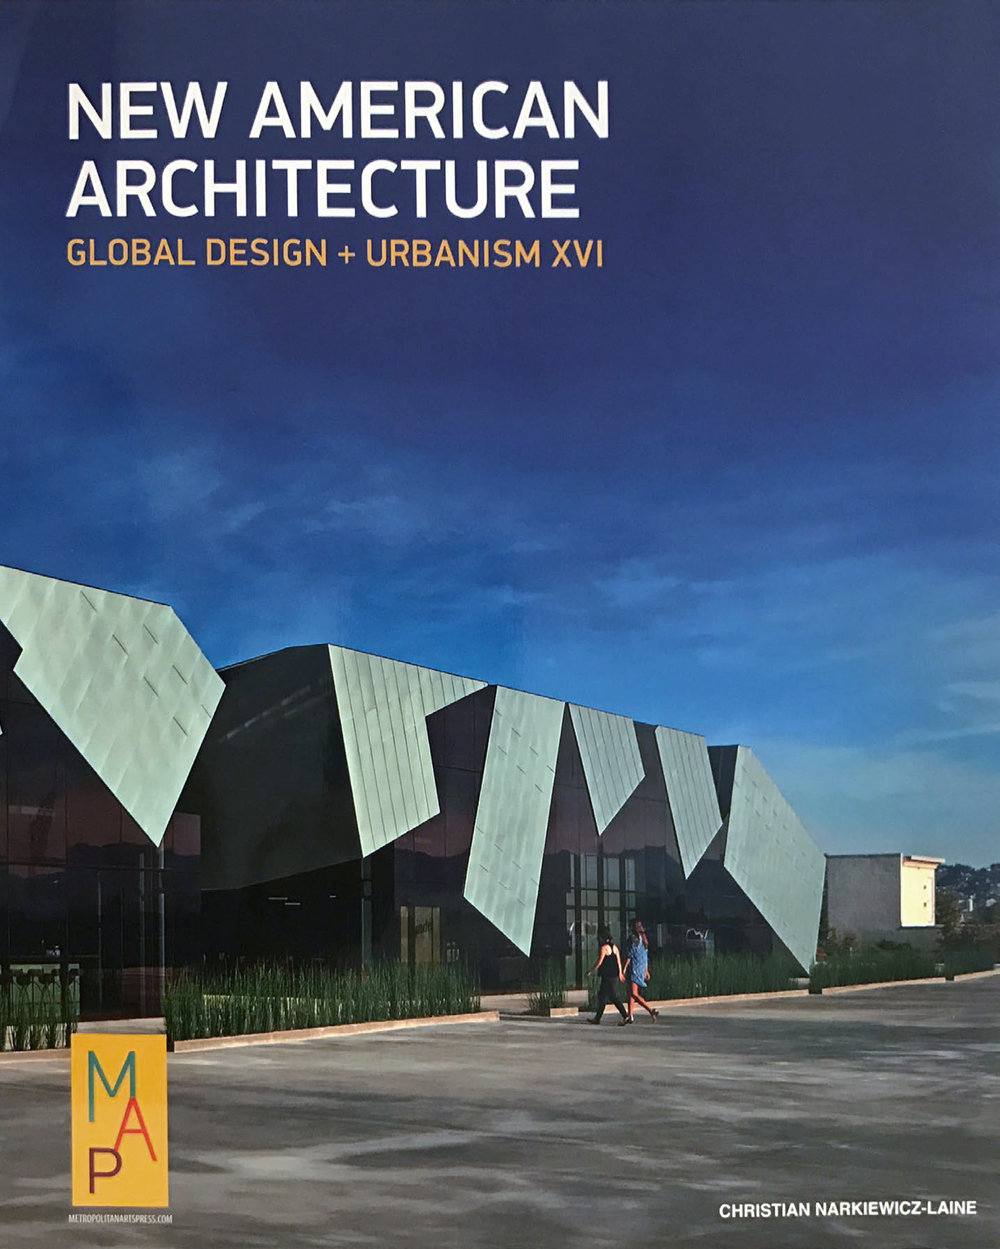 We Just Got Our Hands On A Copy Of New American Architecture By  Metropolitan Arts Press. Weu0027re Excited They Chose Liepāja Thermal Bath And  Bandersnatch To ...